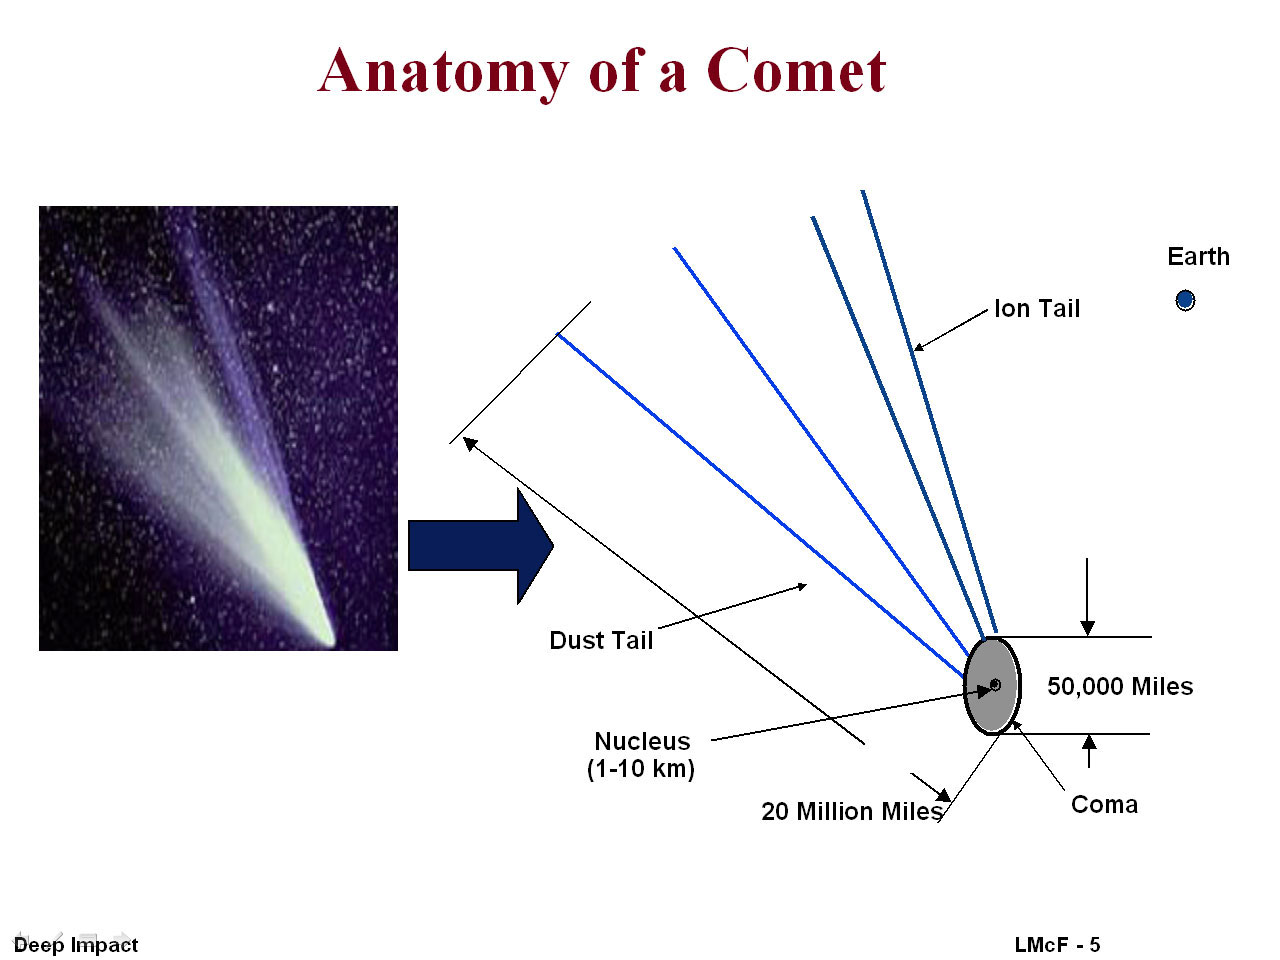 Parts Of A Plot Diagram: Anatomy of a comet.jpg - Wikimedia Commons,Chart